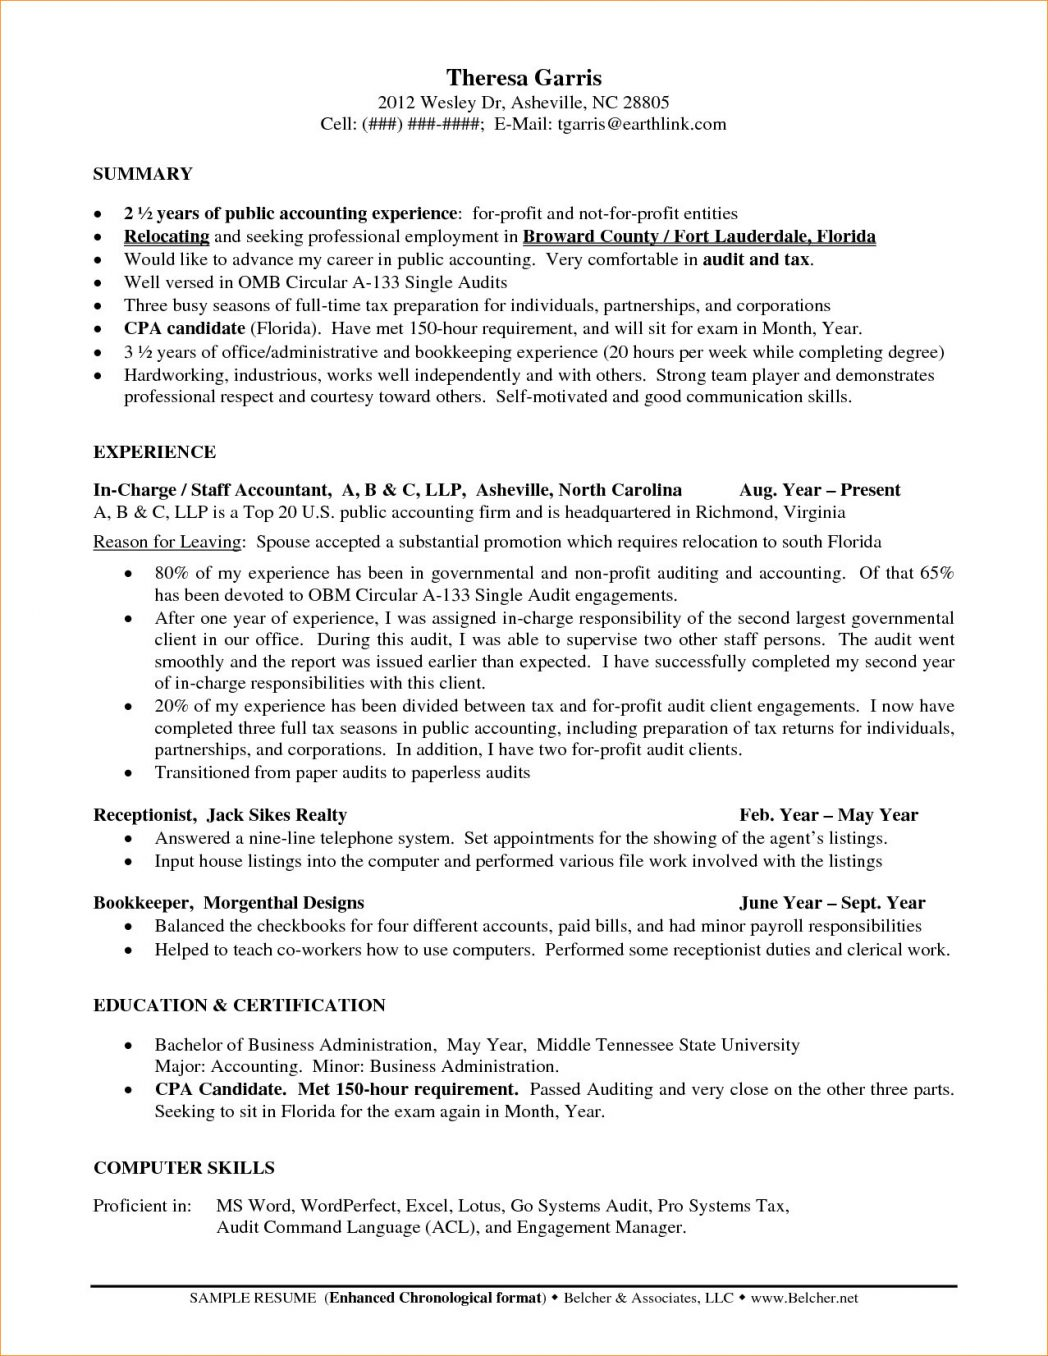 024 Essay Example Best Solutions Of Professional Mba Reflective Help Mri Tech Writing On Teaching Sample Cover Grea Leadership Introduction Using Gibbs Model In Third Person Work Experience Beautiful Examples Advanced Higher English Pdf About Life Full